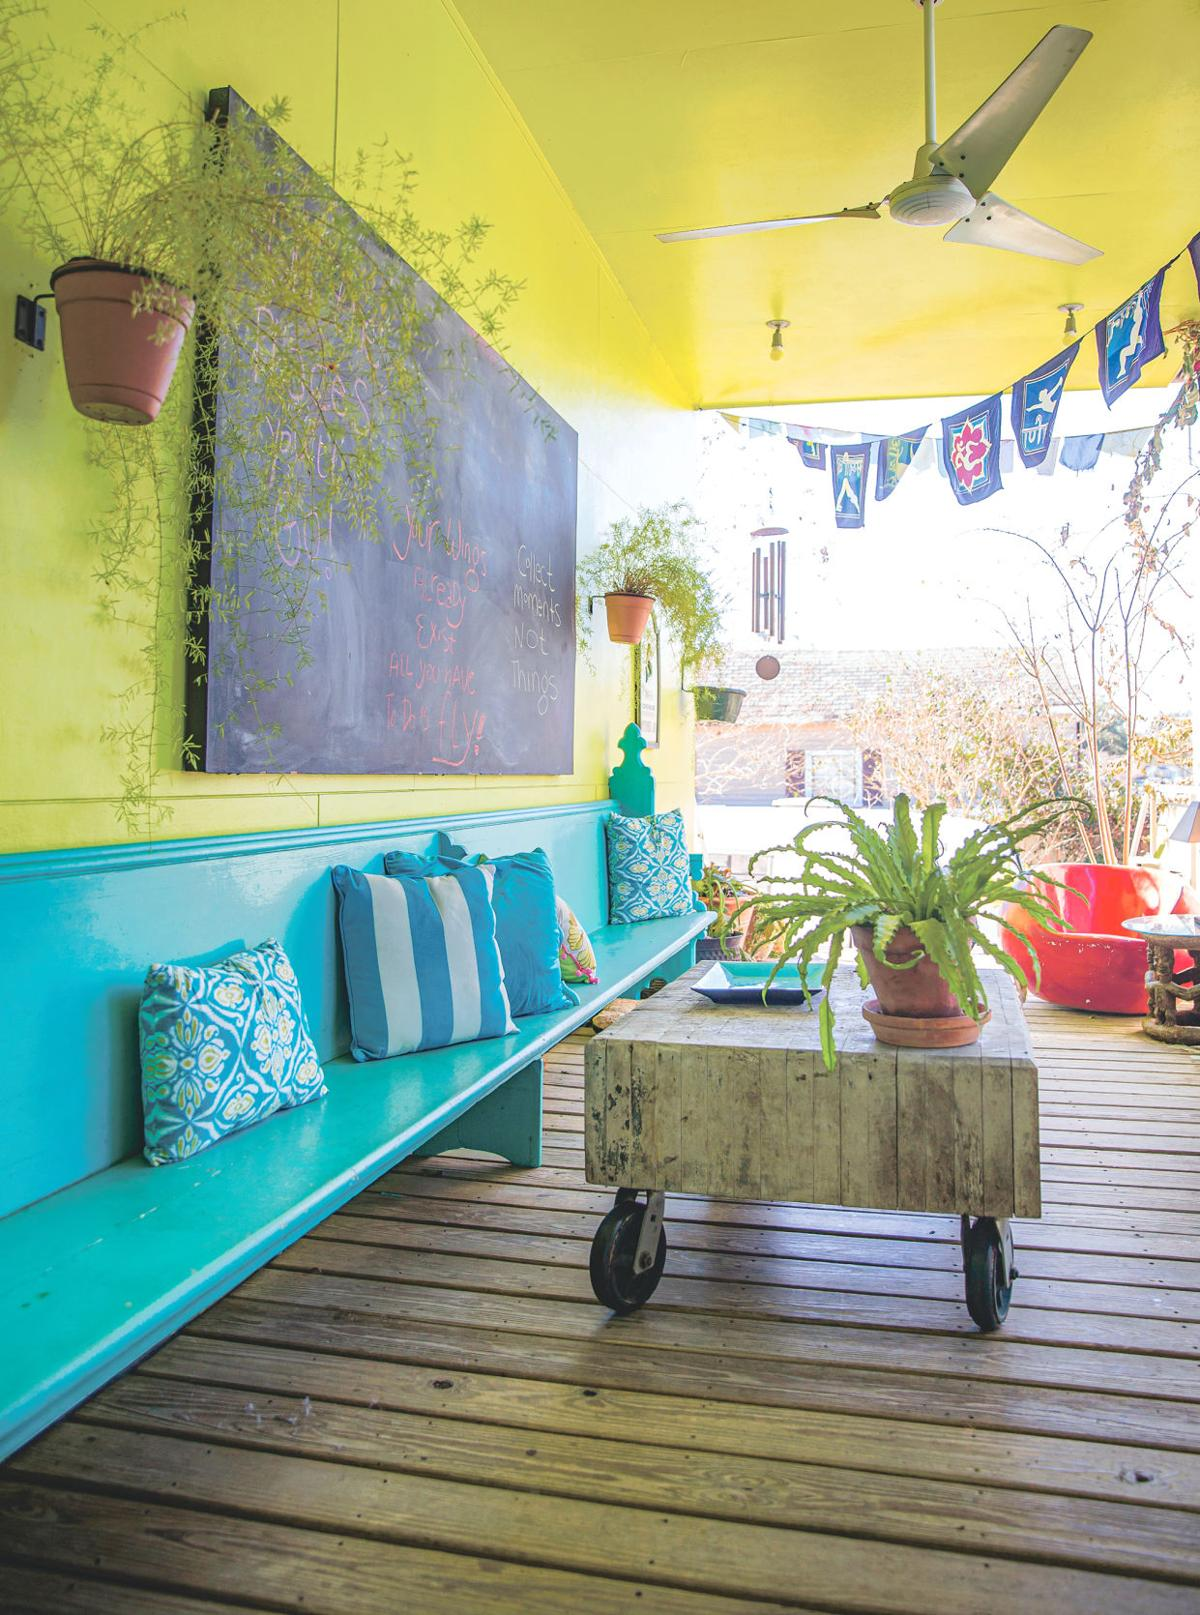 Central City Sideporch